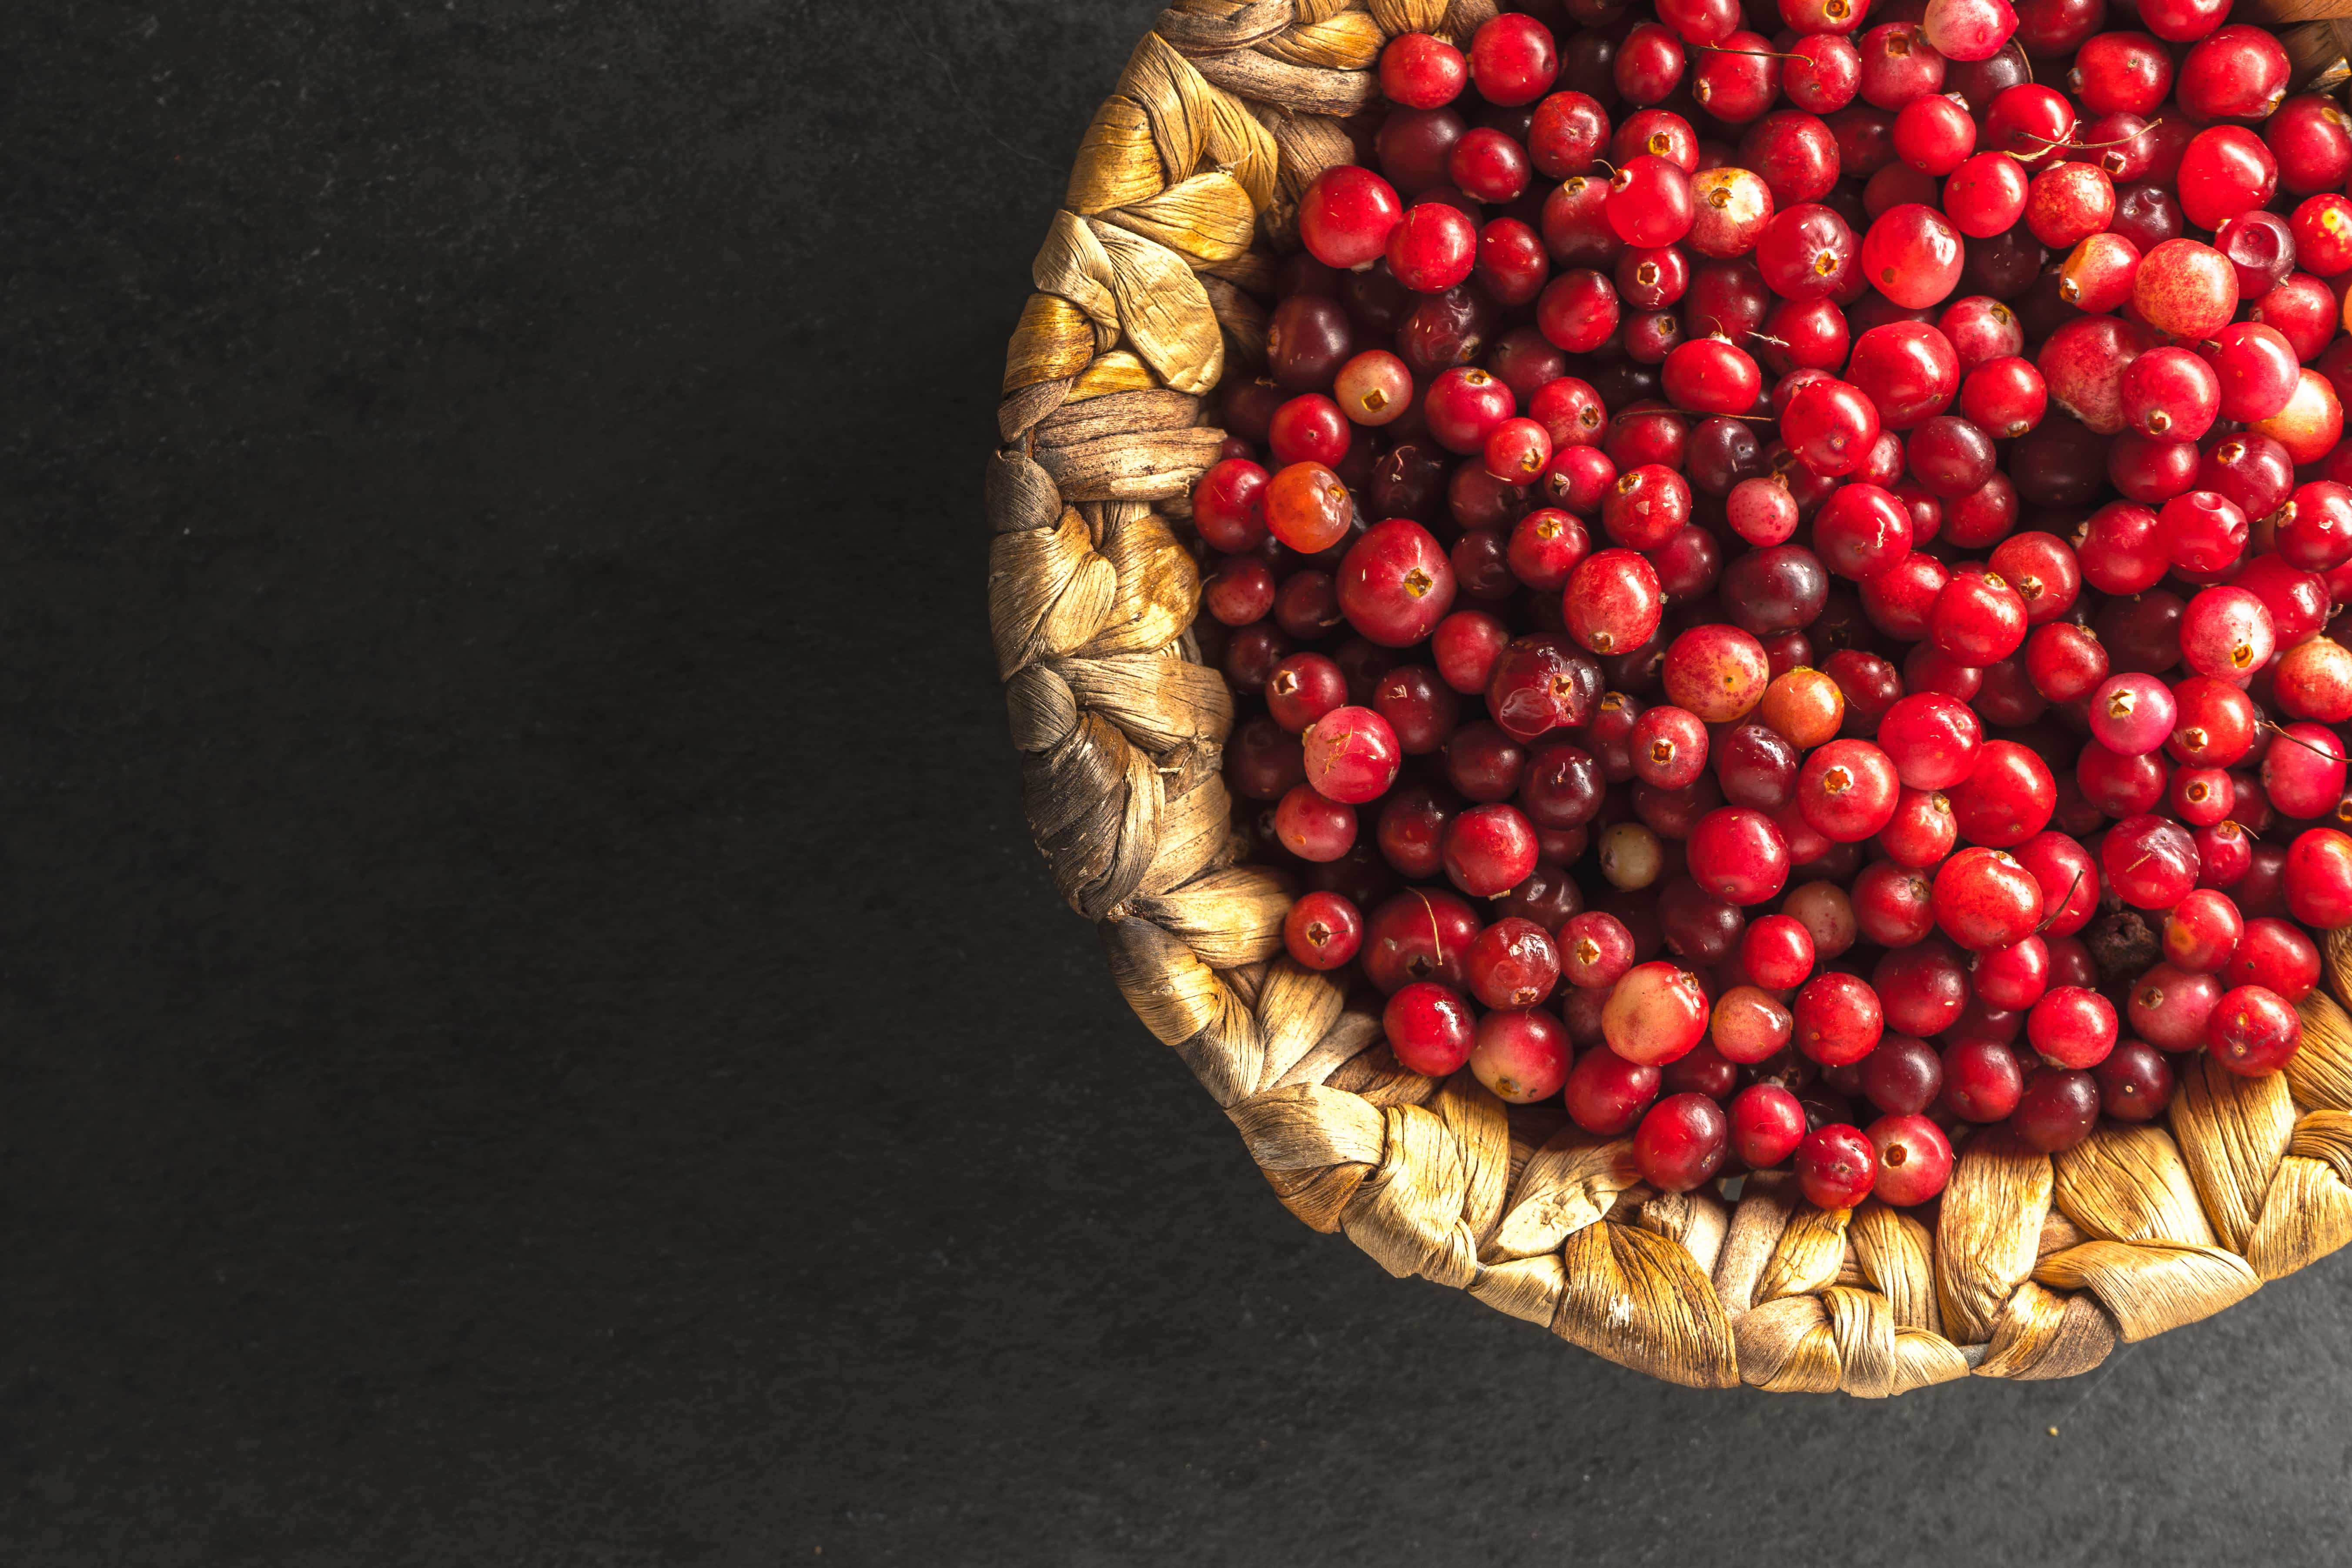 Bright red cranberry in the basket on the right